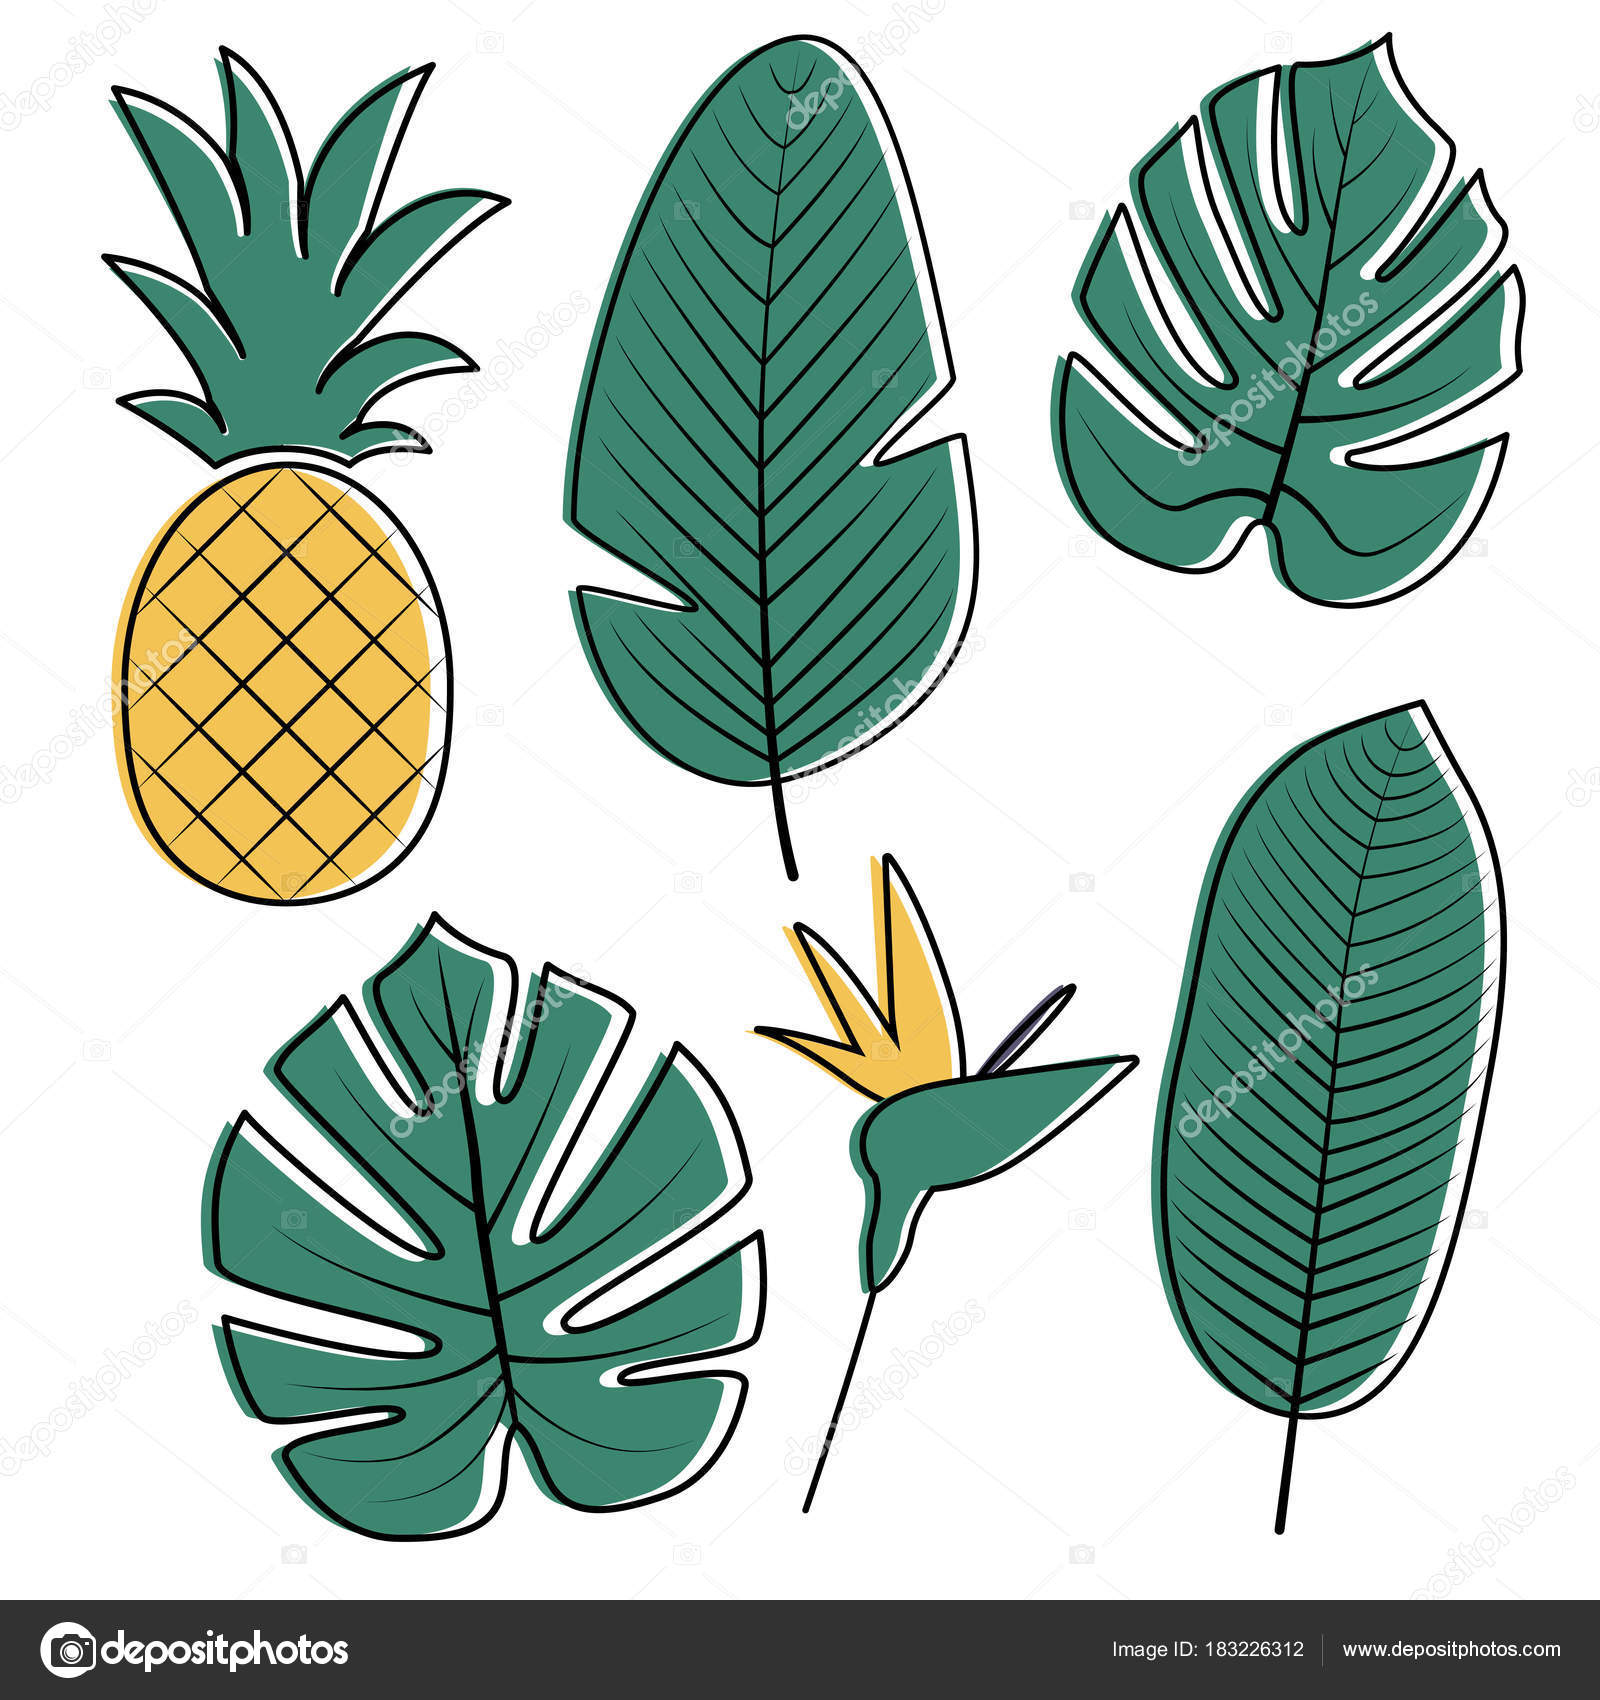 Tropical Leaves Collection Vector Illustration Stock Vector C Createrosalia 183226312 A 1x1 ratio file square 50cmx50cm or any combination. https depositphotos com 183226312 stock illustration tropical leaves collection vector illustration html